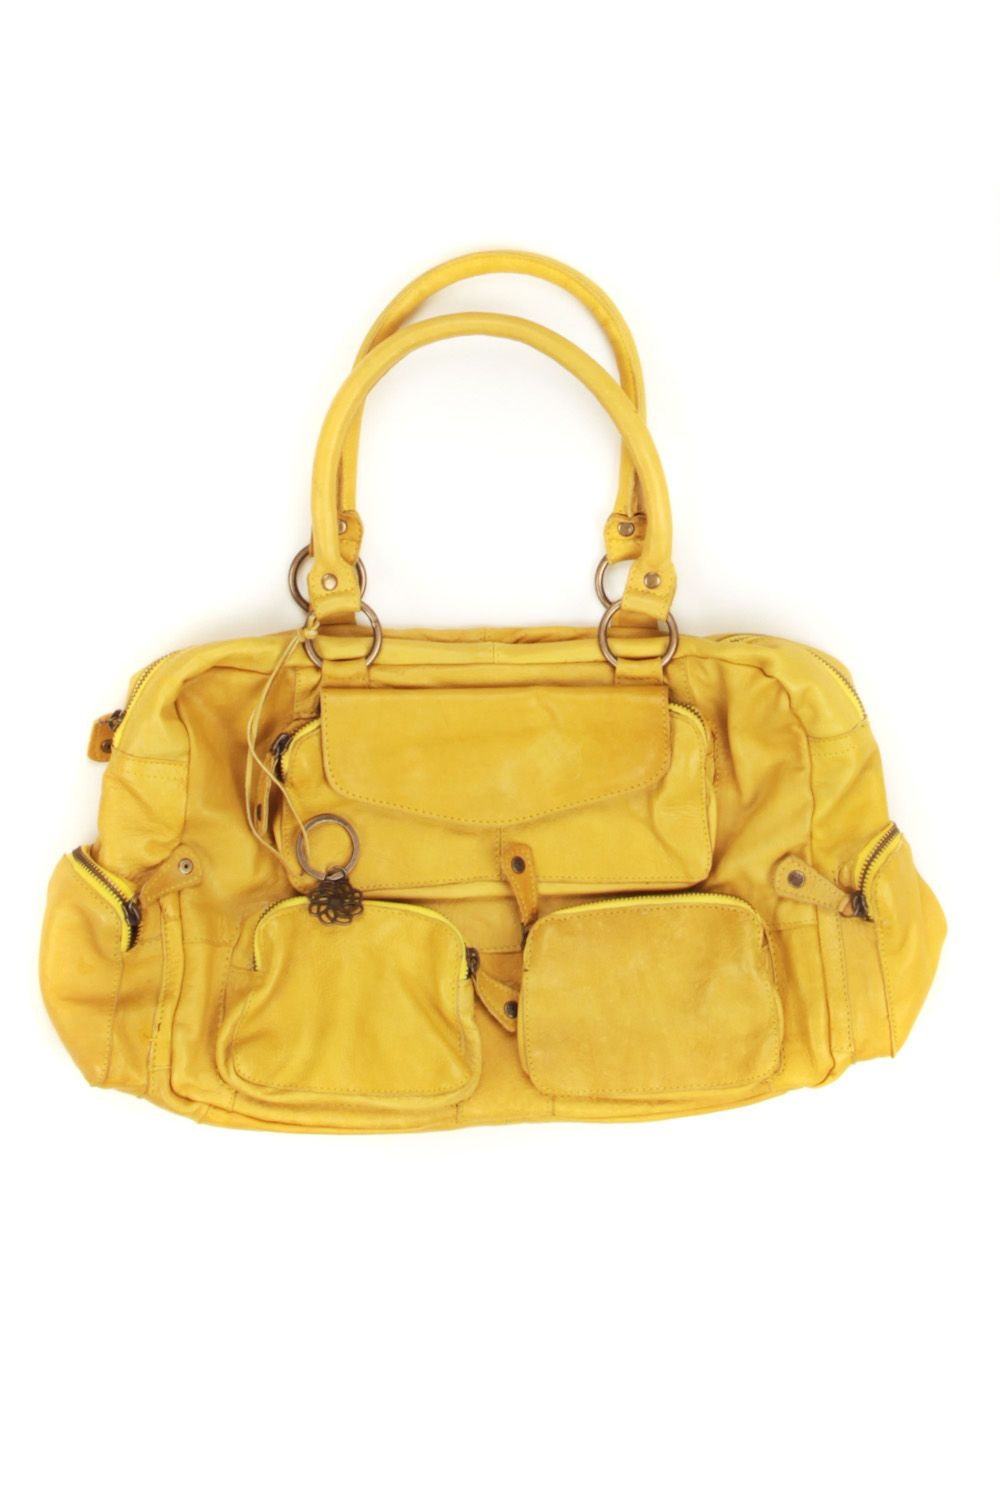 Sac A Main Naina Pieces Jaune   vetements   Bags, Shoe bag et Sac a main 7240418f441